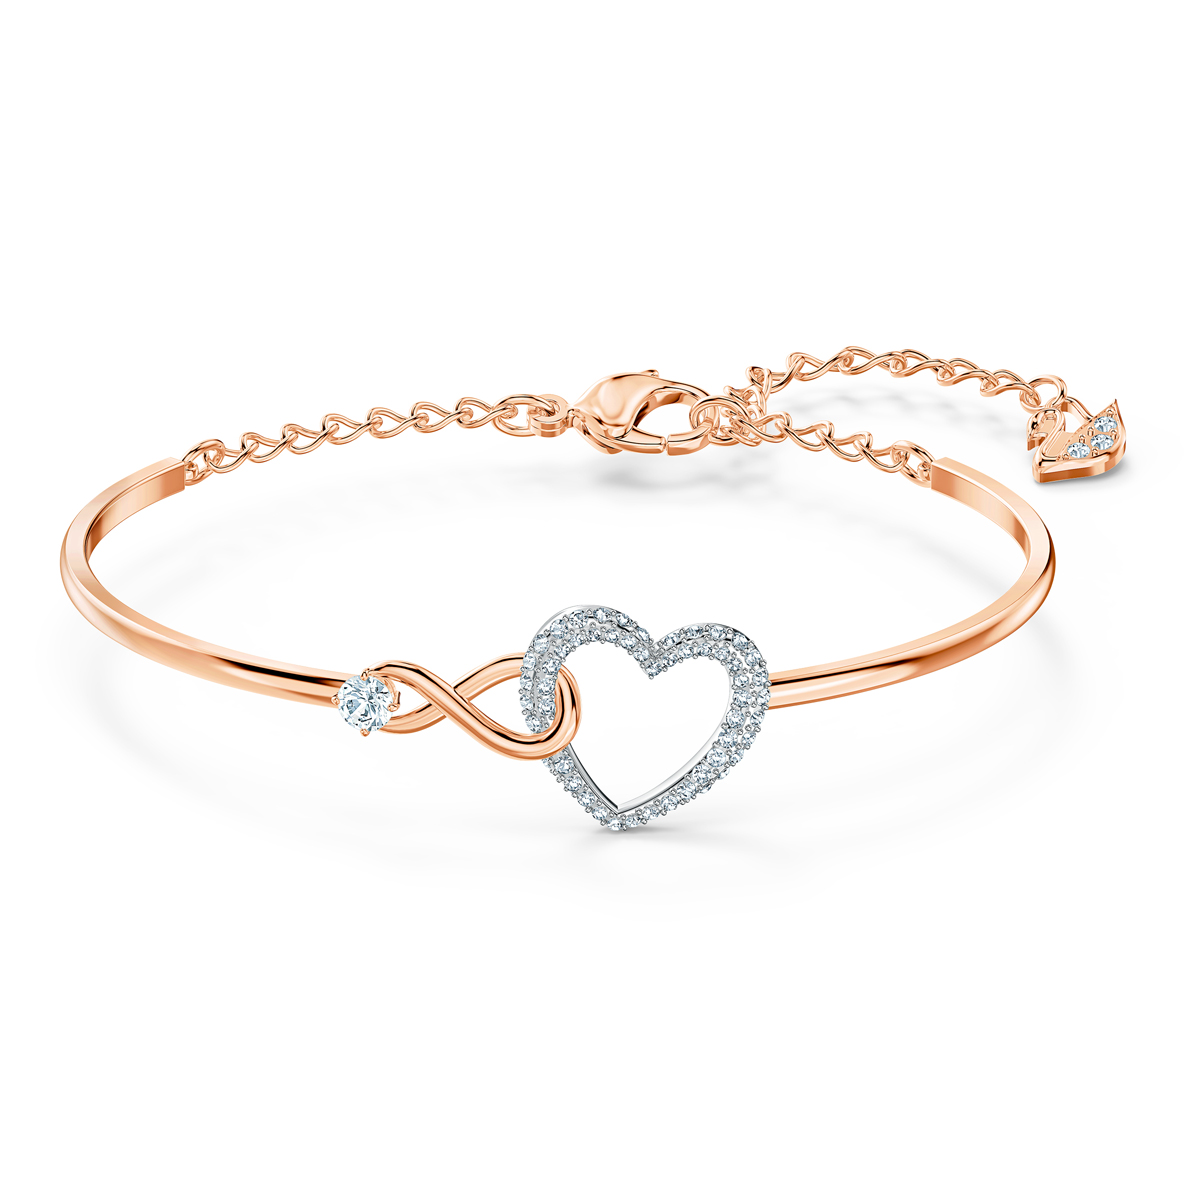 Swarovski Crystal Gold Infinity Heart Bangle Bracelet